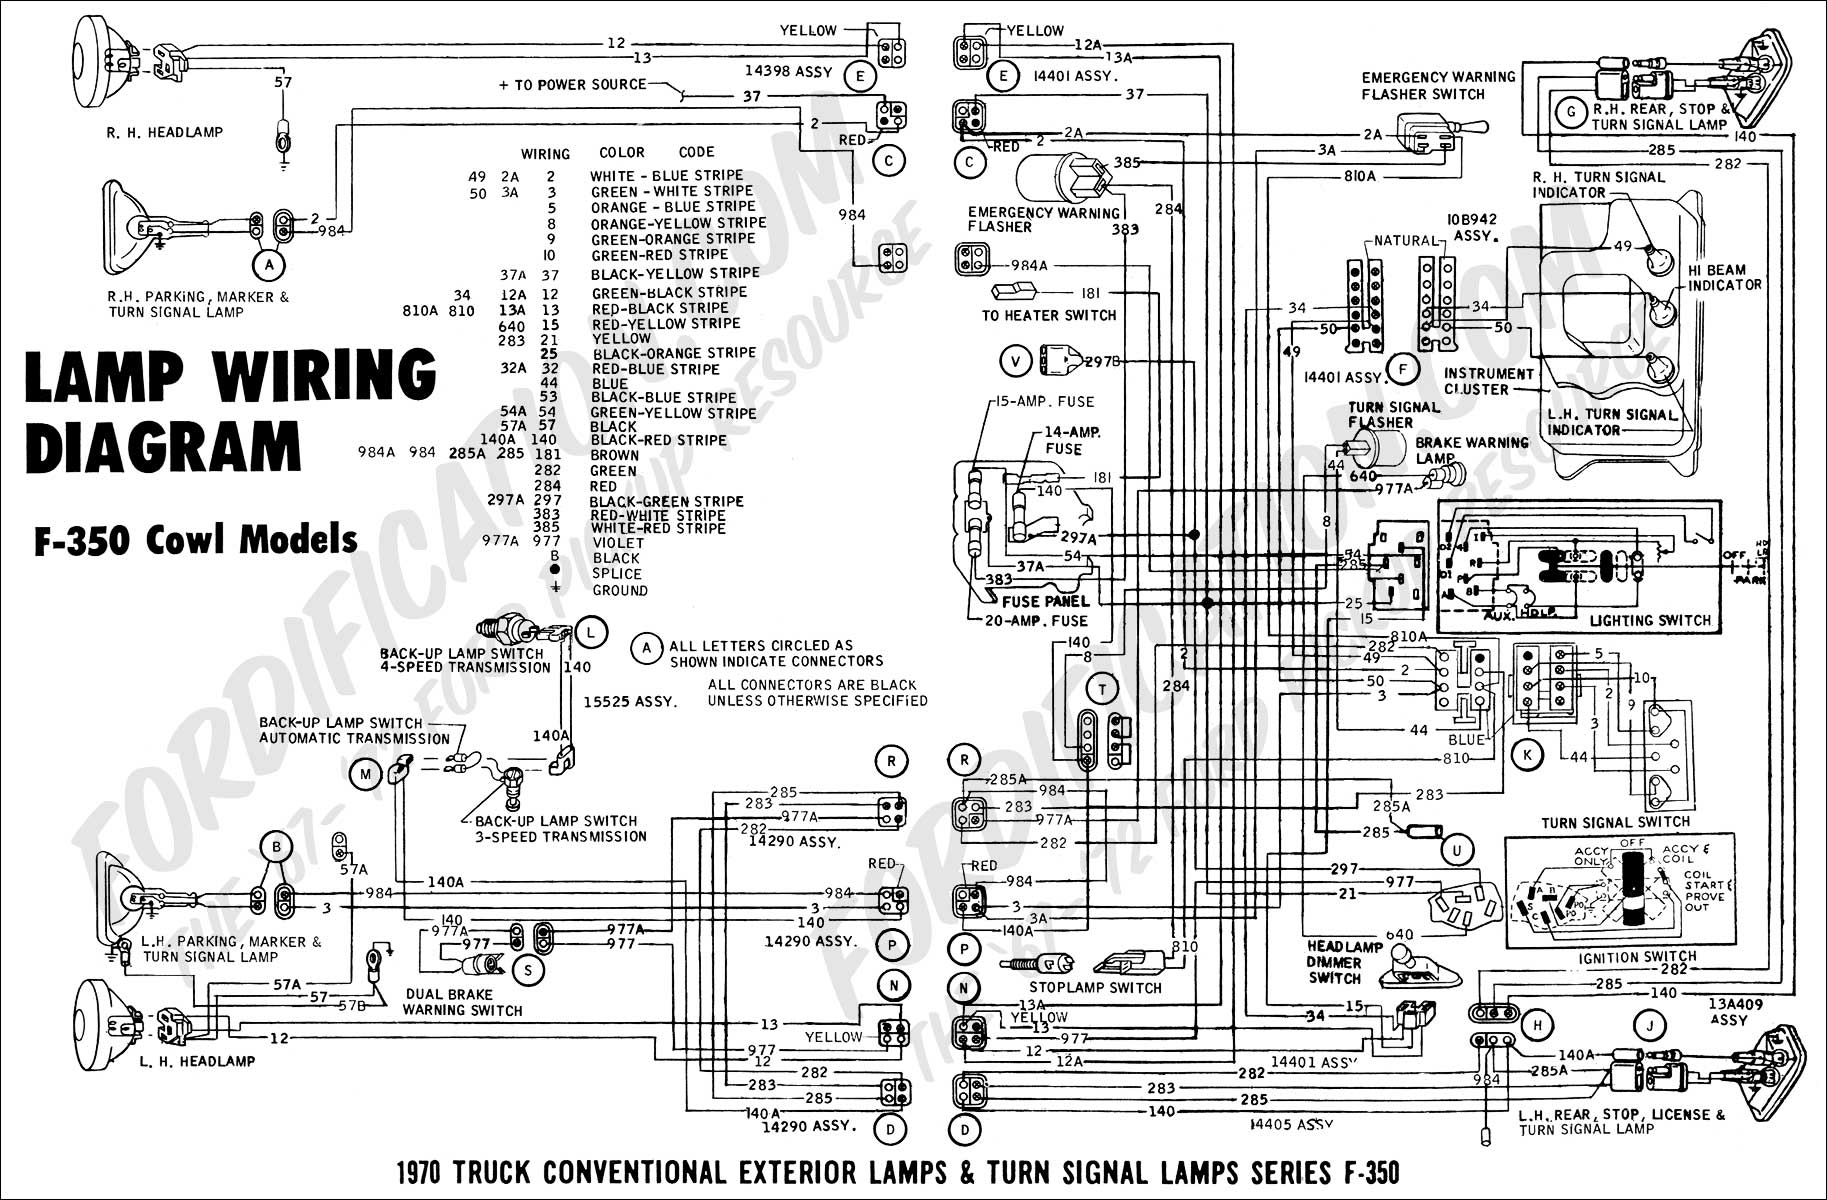 hight resolution of 1995 e350 wiring diagram wiring library 2002 ford e250 fuse diagram 2003 ford e350 wiring diagram